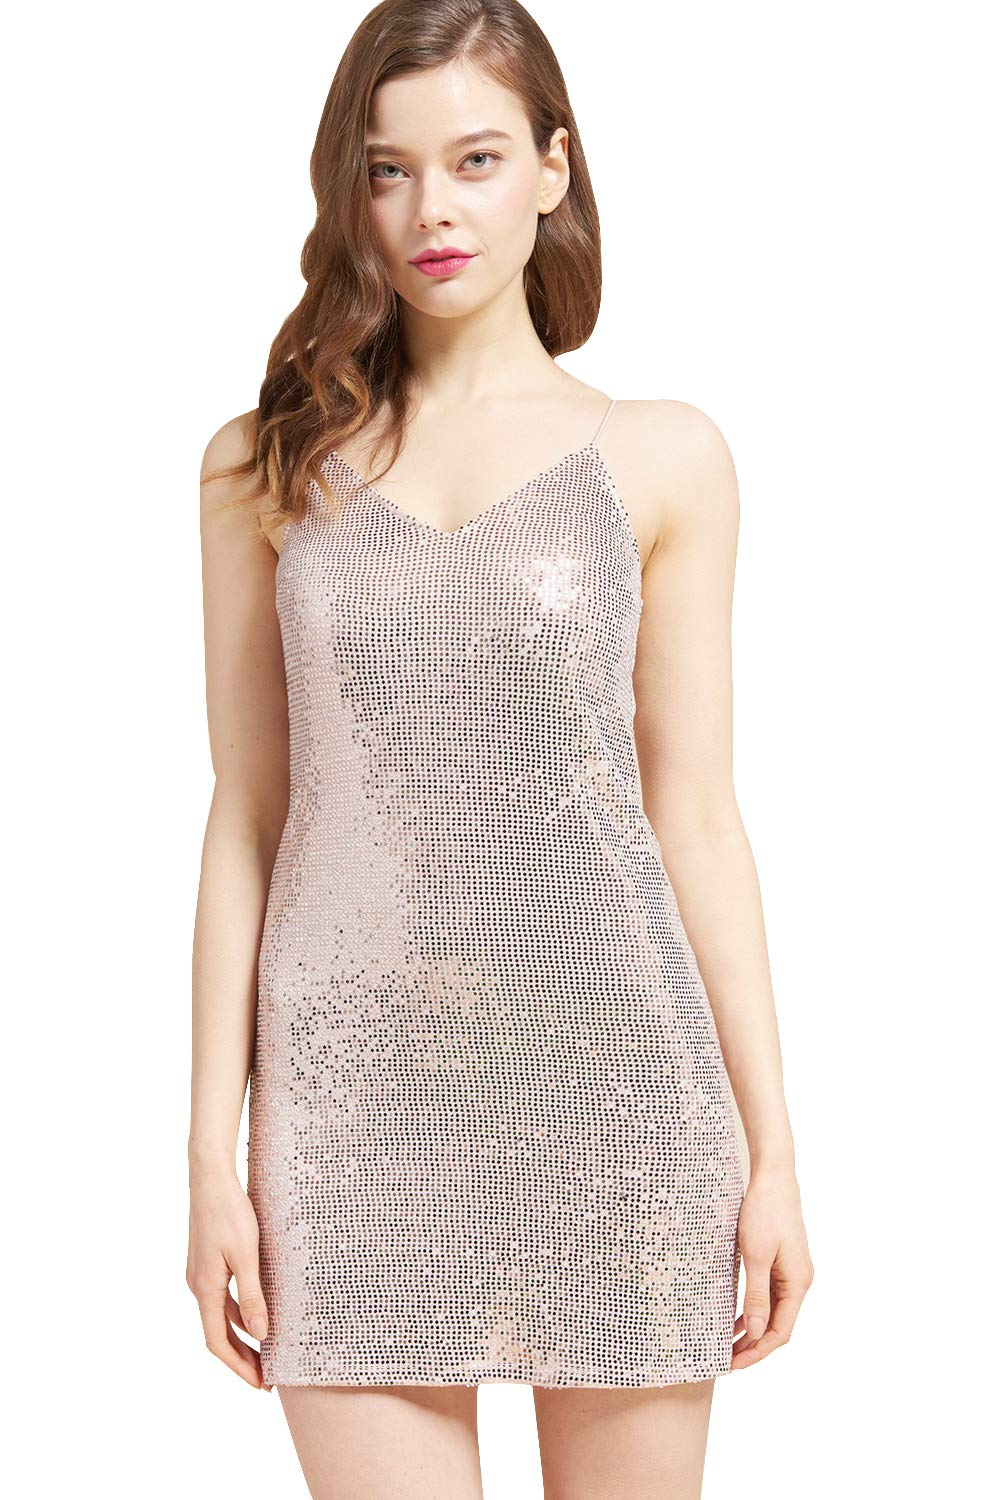 May You Be Women's Junior Sleeveless Sparkle Bodycon Mini Cocktail Evening Party Dress with V-Neckline